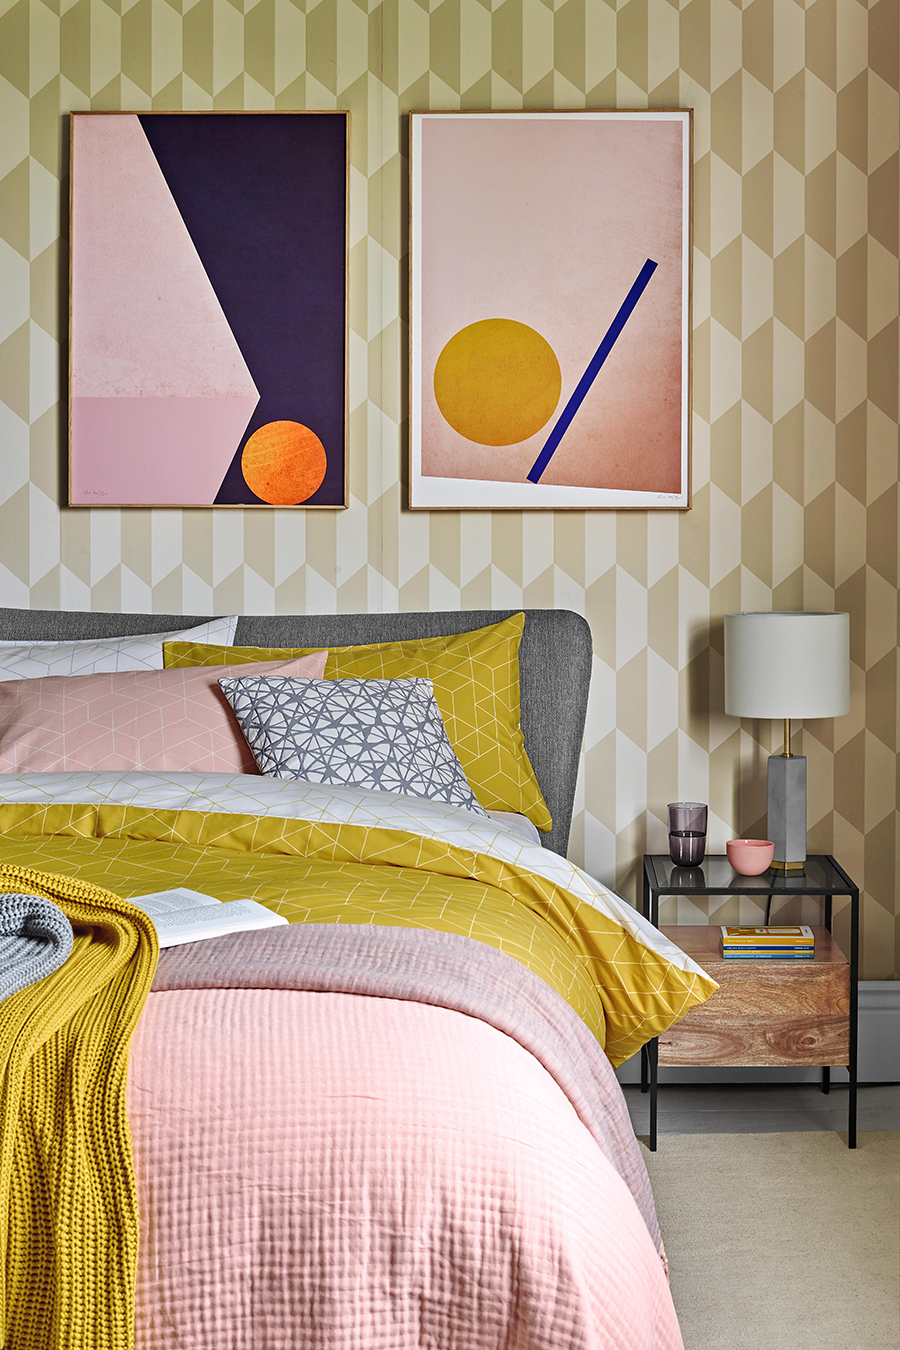 Pink and Mustard Bedroom - Decorating according to your zodiac sign - Aquarius